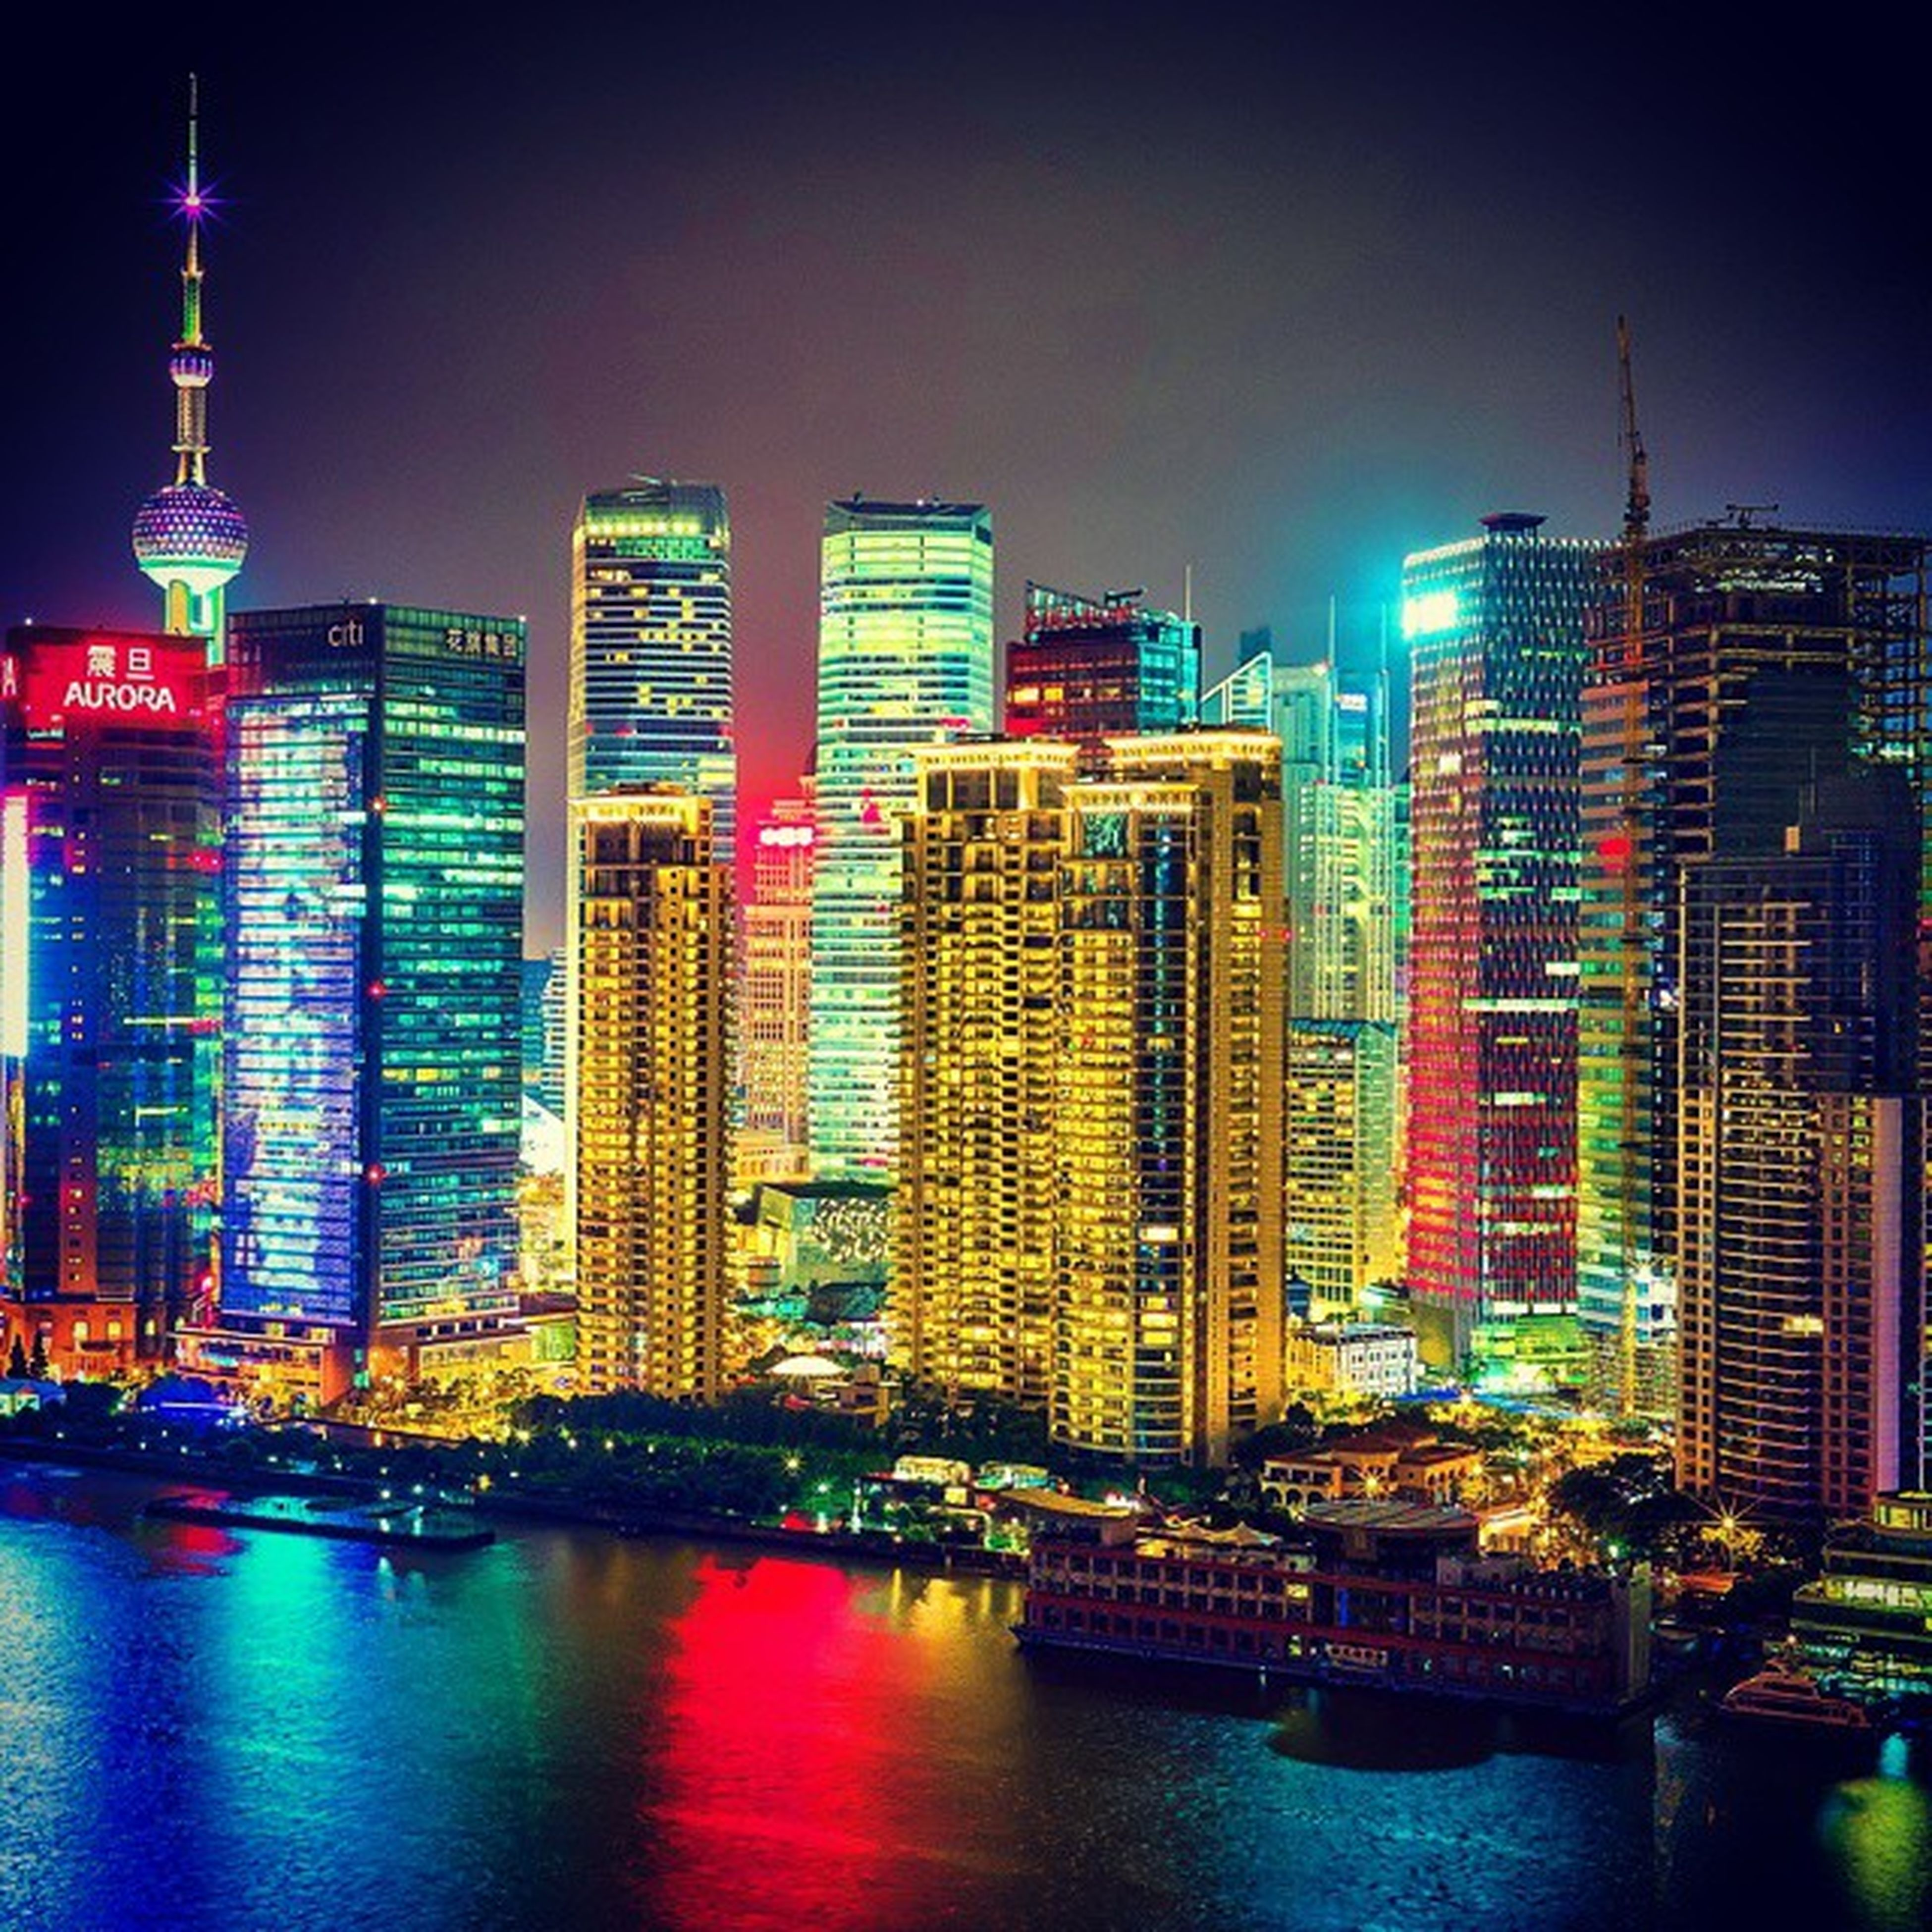 building exterior, architecture, city, built structure, skyscraper, illuminated, waterfront, tall - high, tower, water, cityscape, modern, office building, urban skyline, night, capital cities, river, financial district, travel destinations, famous place